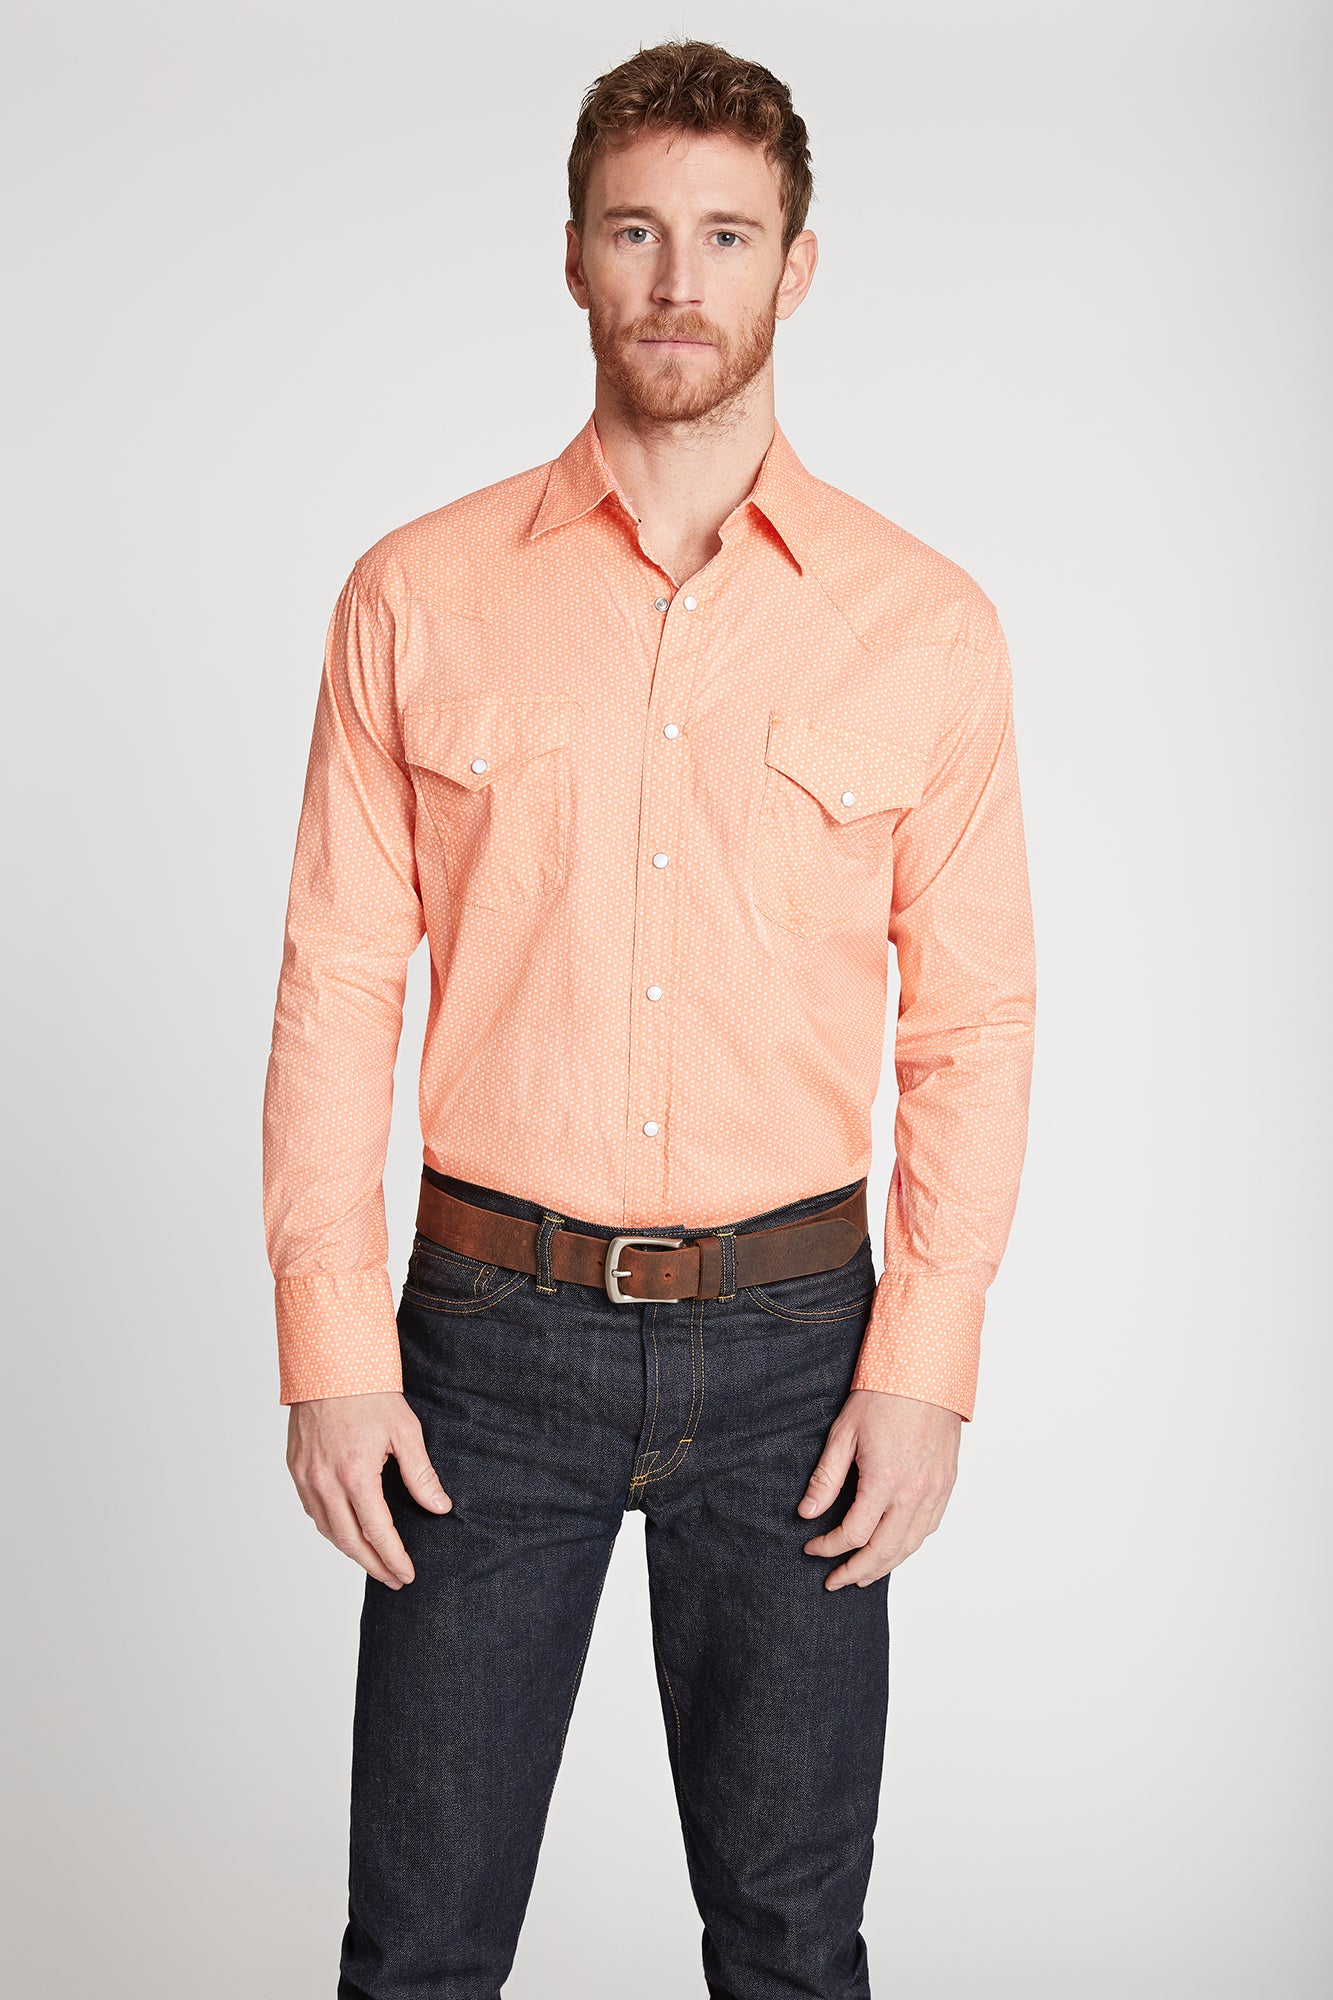 Men's Black Label Premium Cotton Poplin Western Shirt in Coral | Ely Cattleman